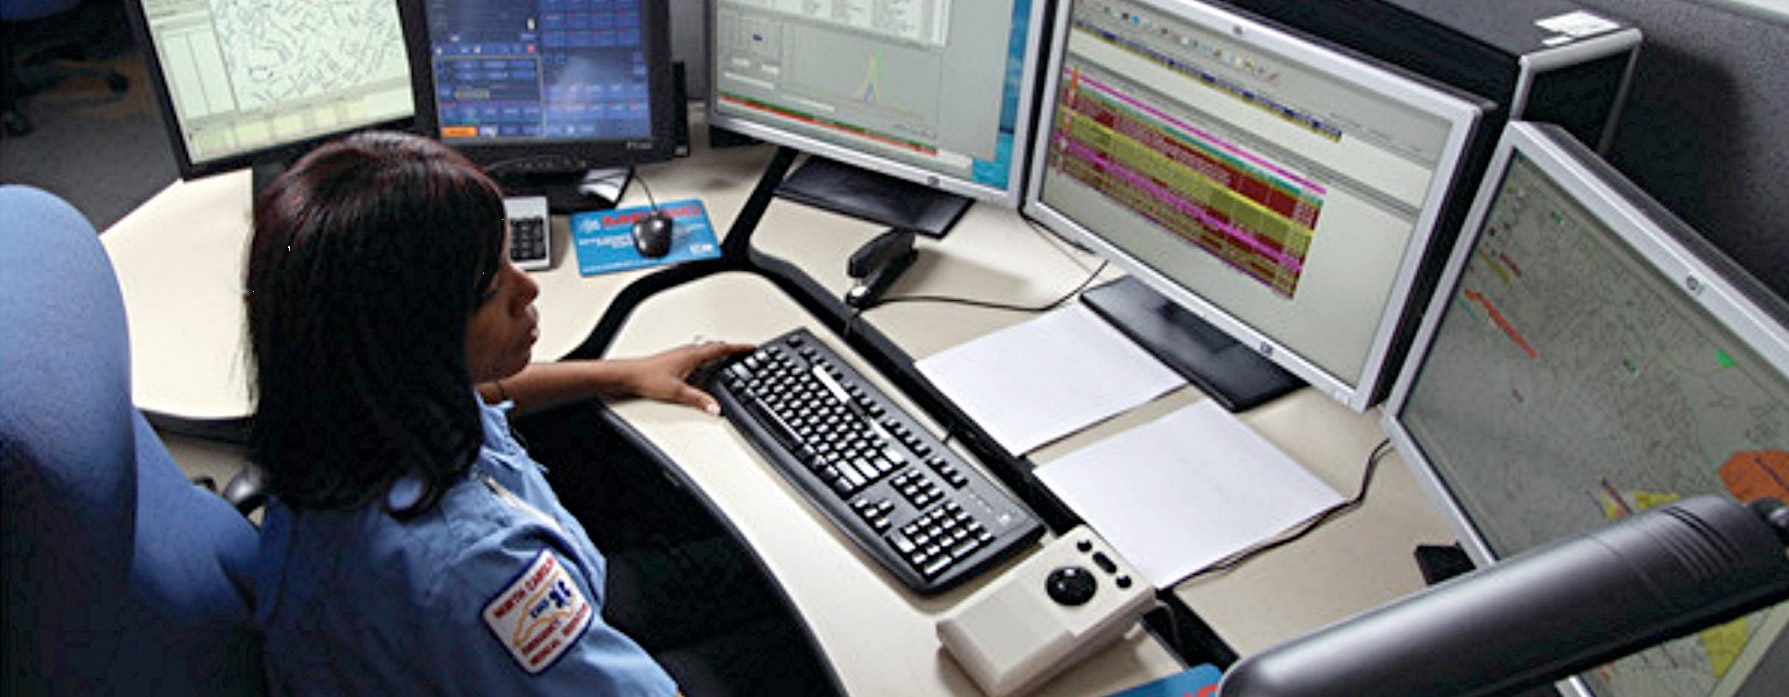 emergency operator sitting at console desk looking at monitors